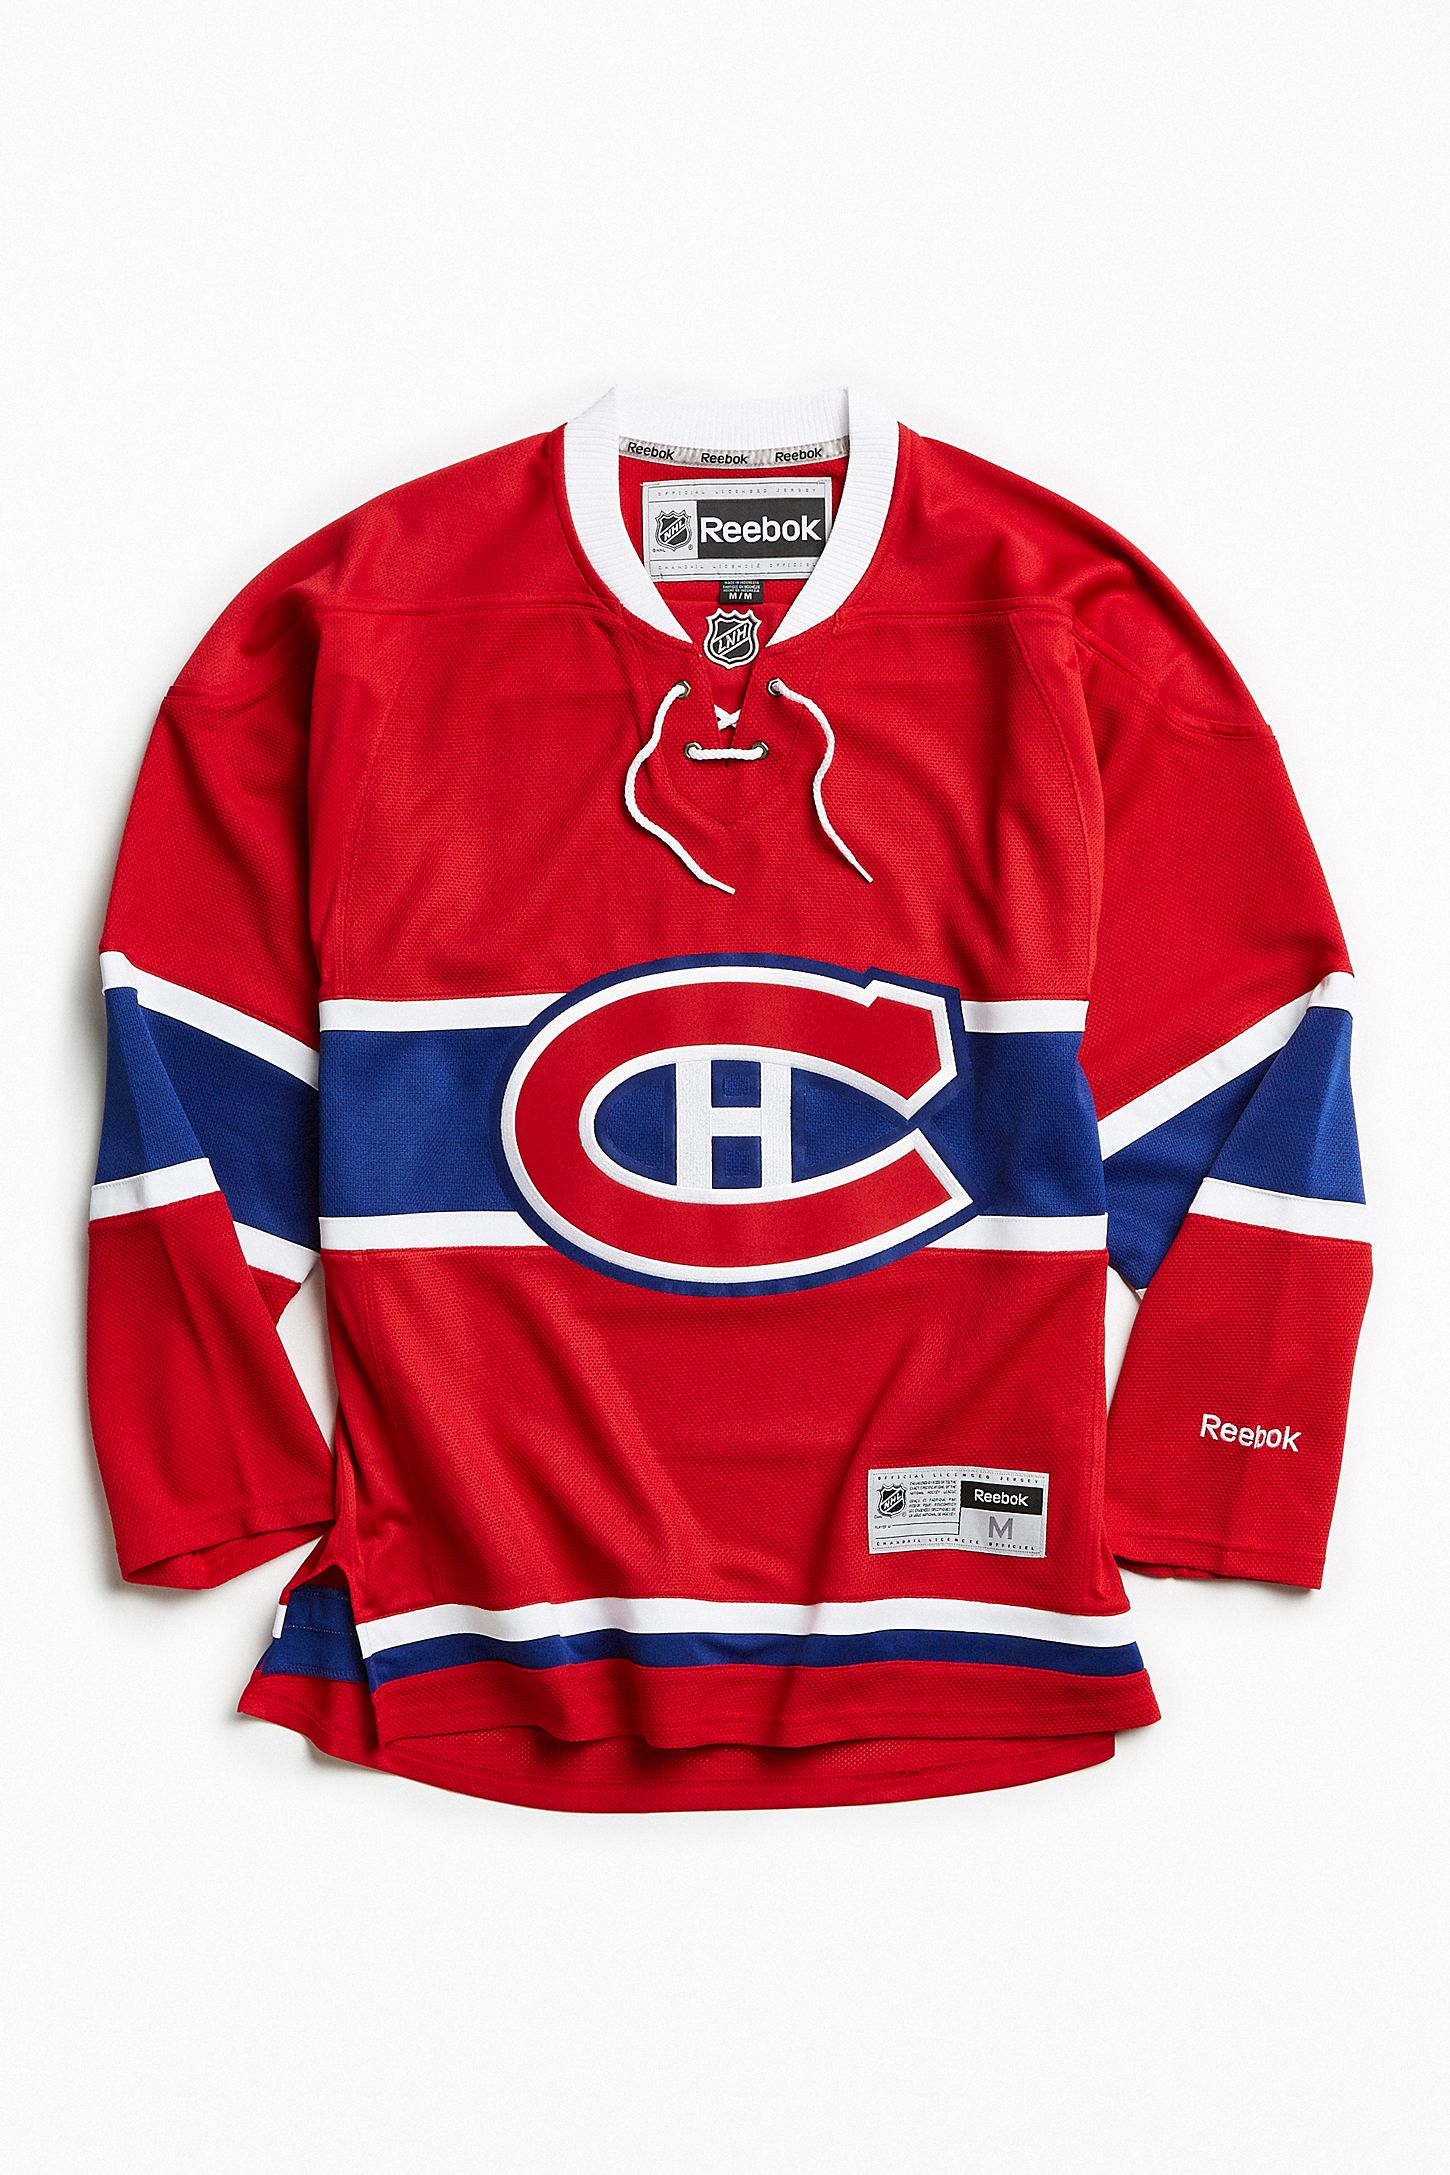 best cheap ff8cf 71a0b Reebok NHL Montreal Canadiens Hockey Jersey